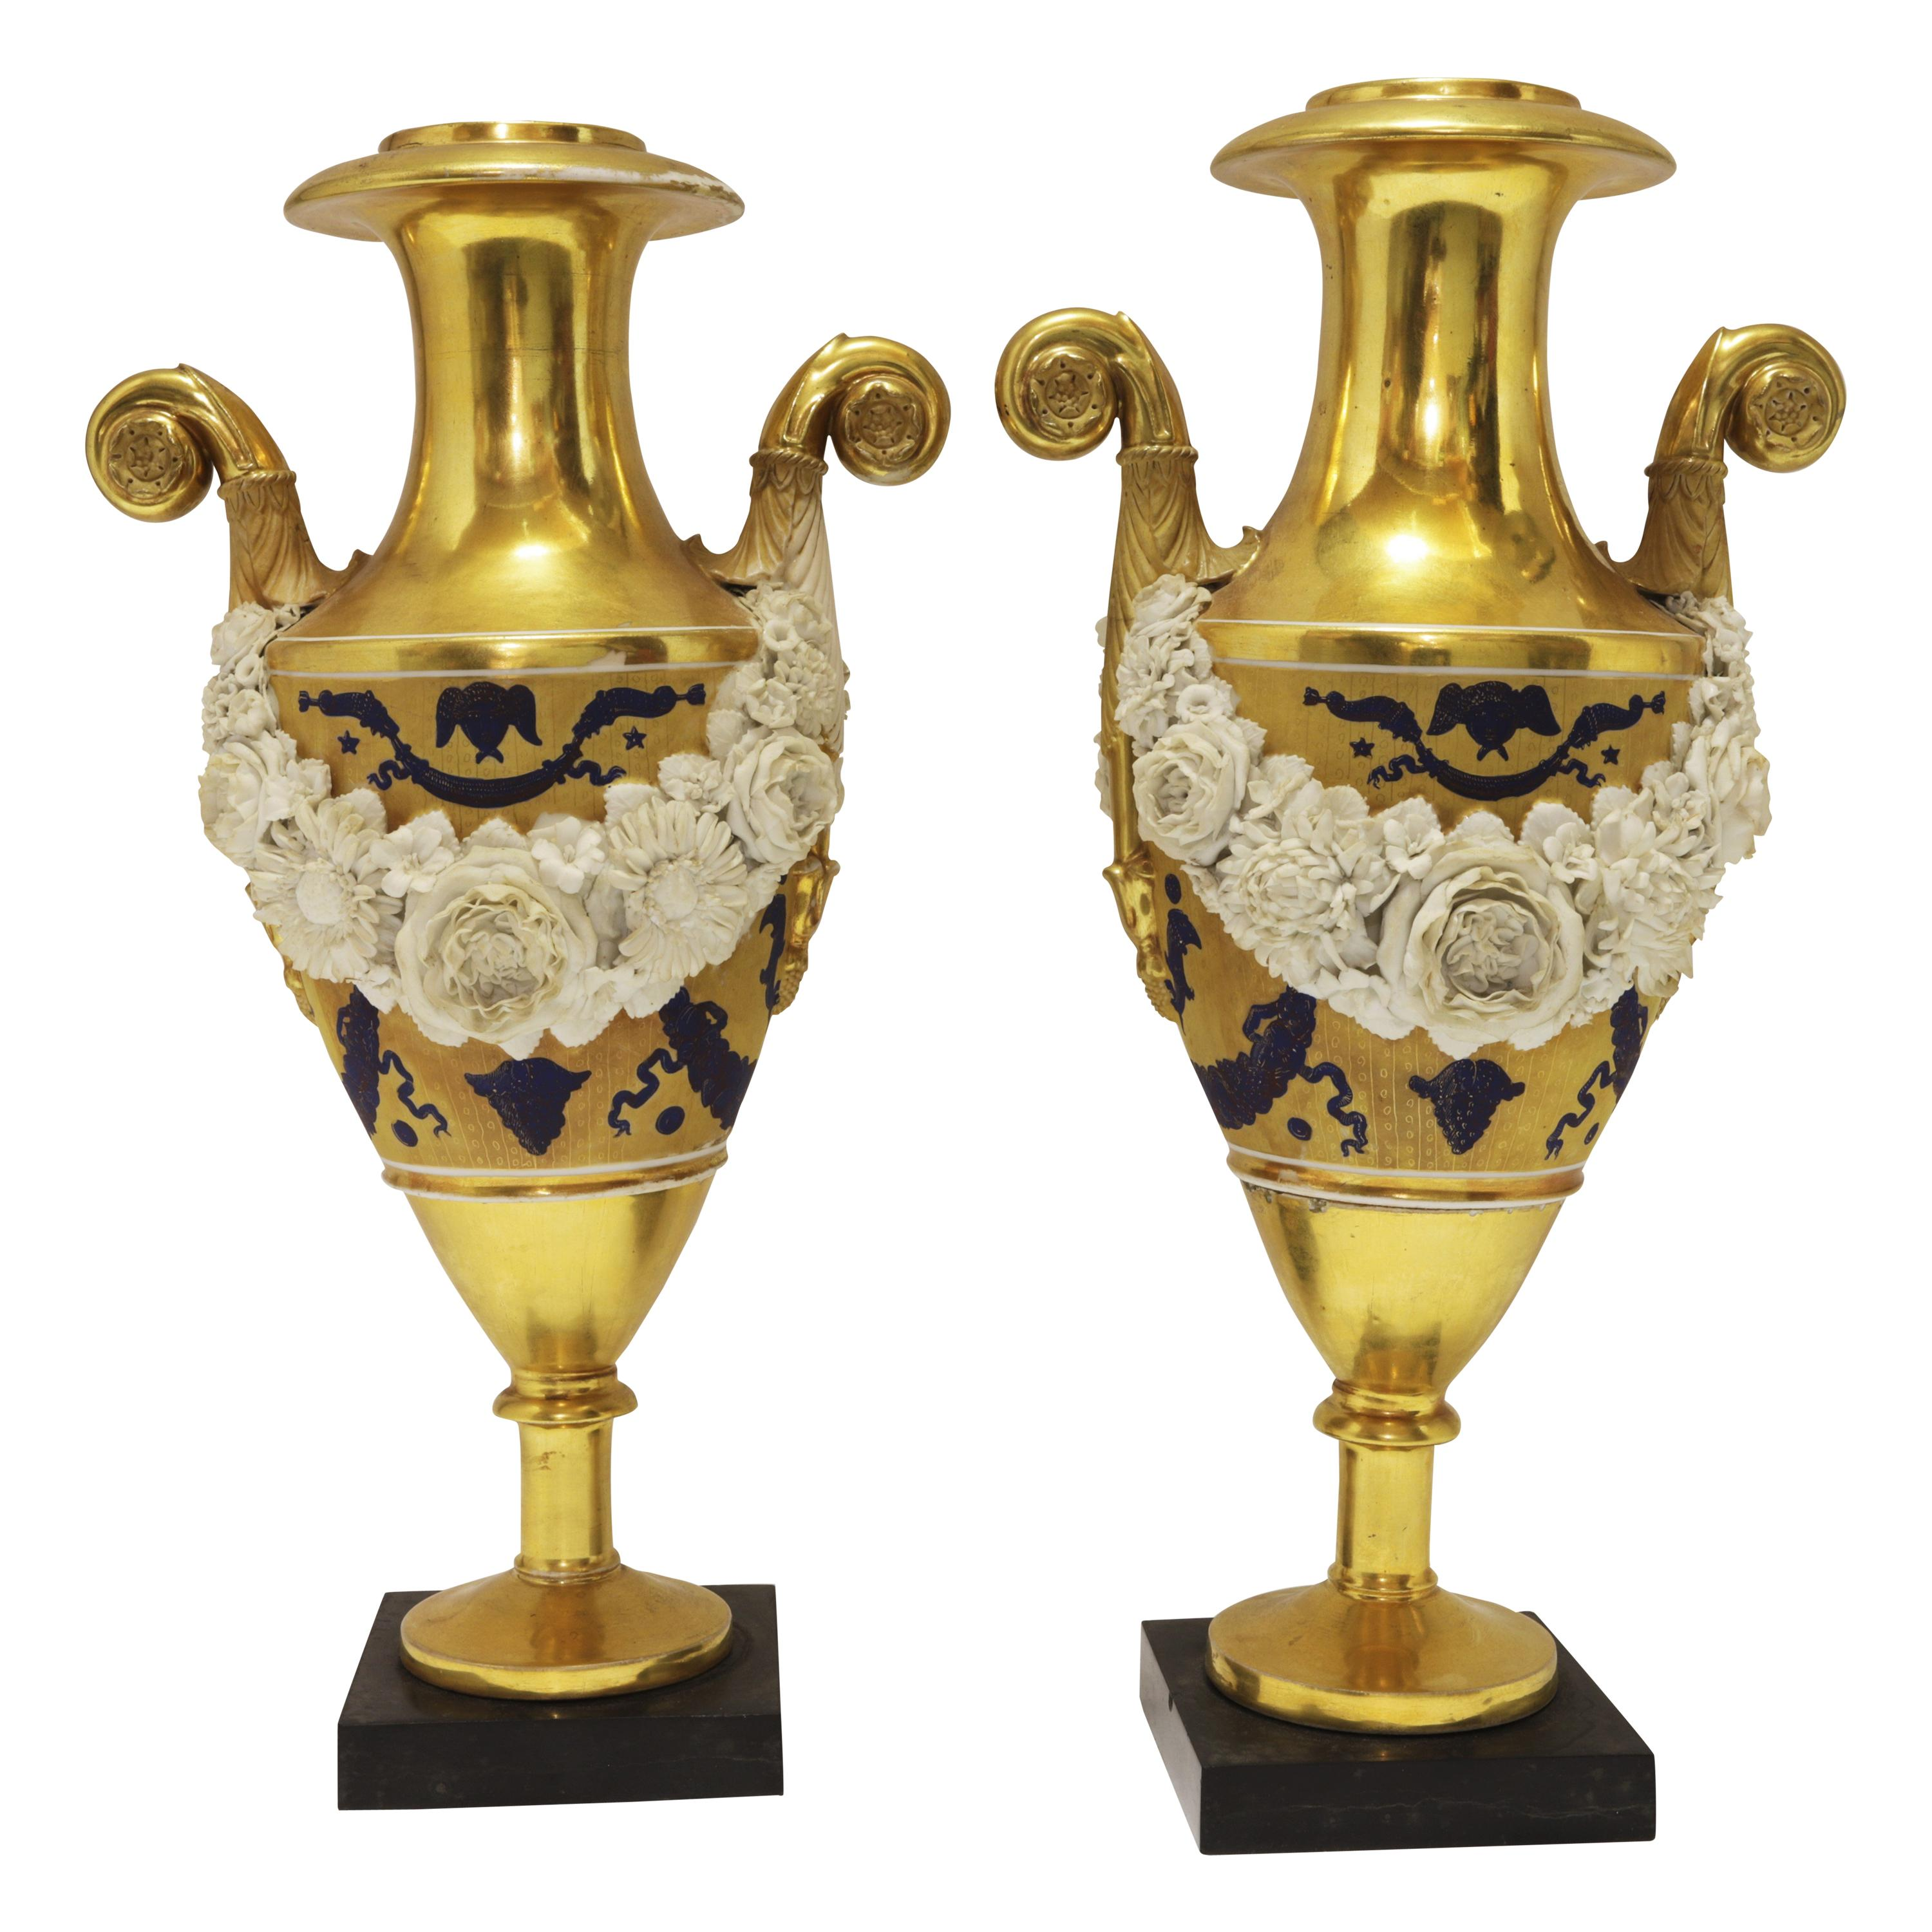 Pair of French Empire Pairs Porcelain Vases